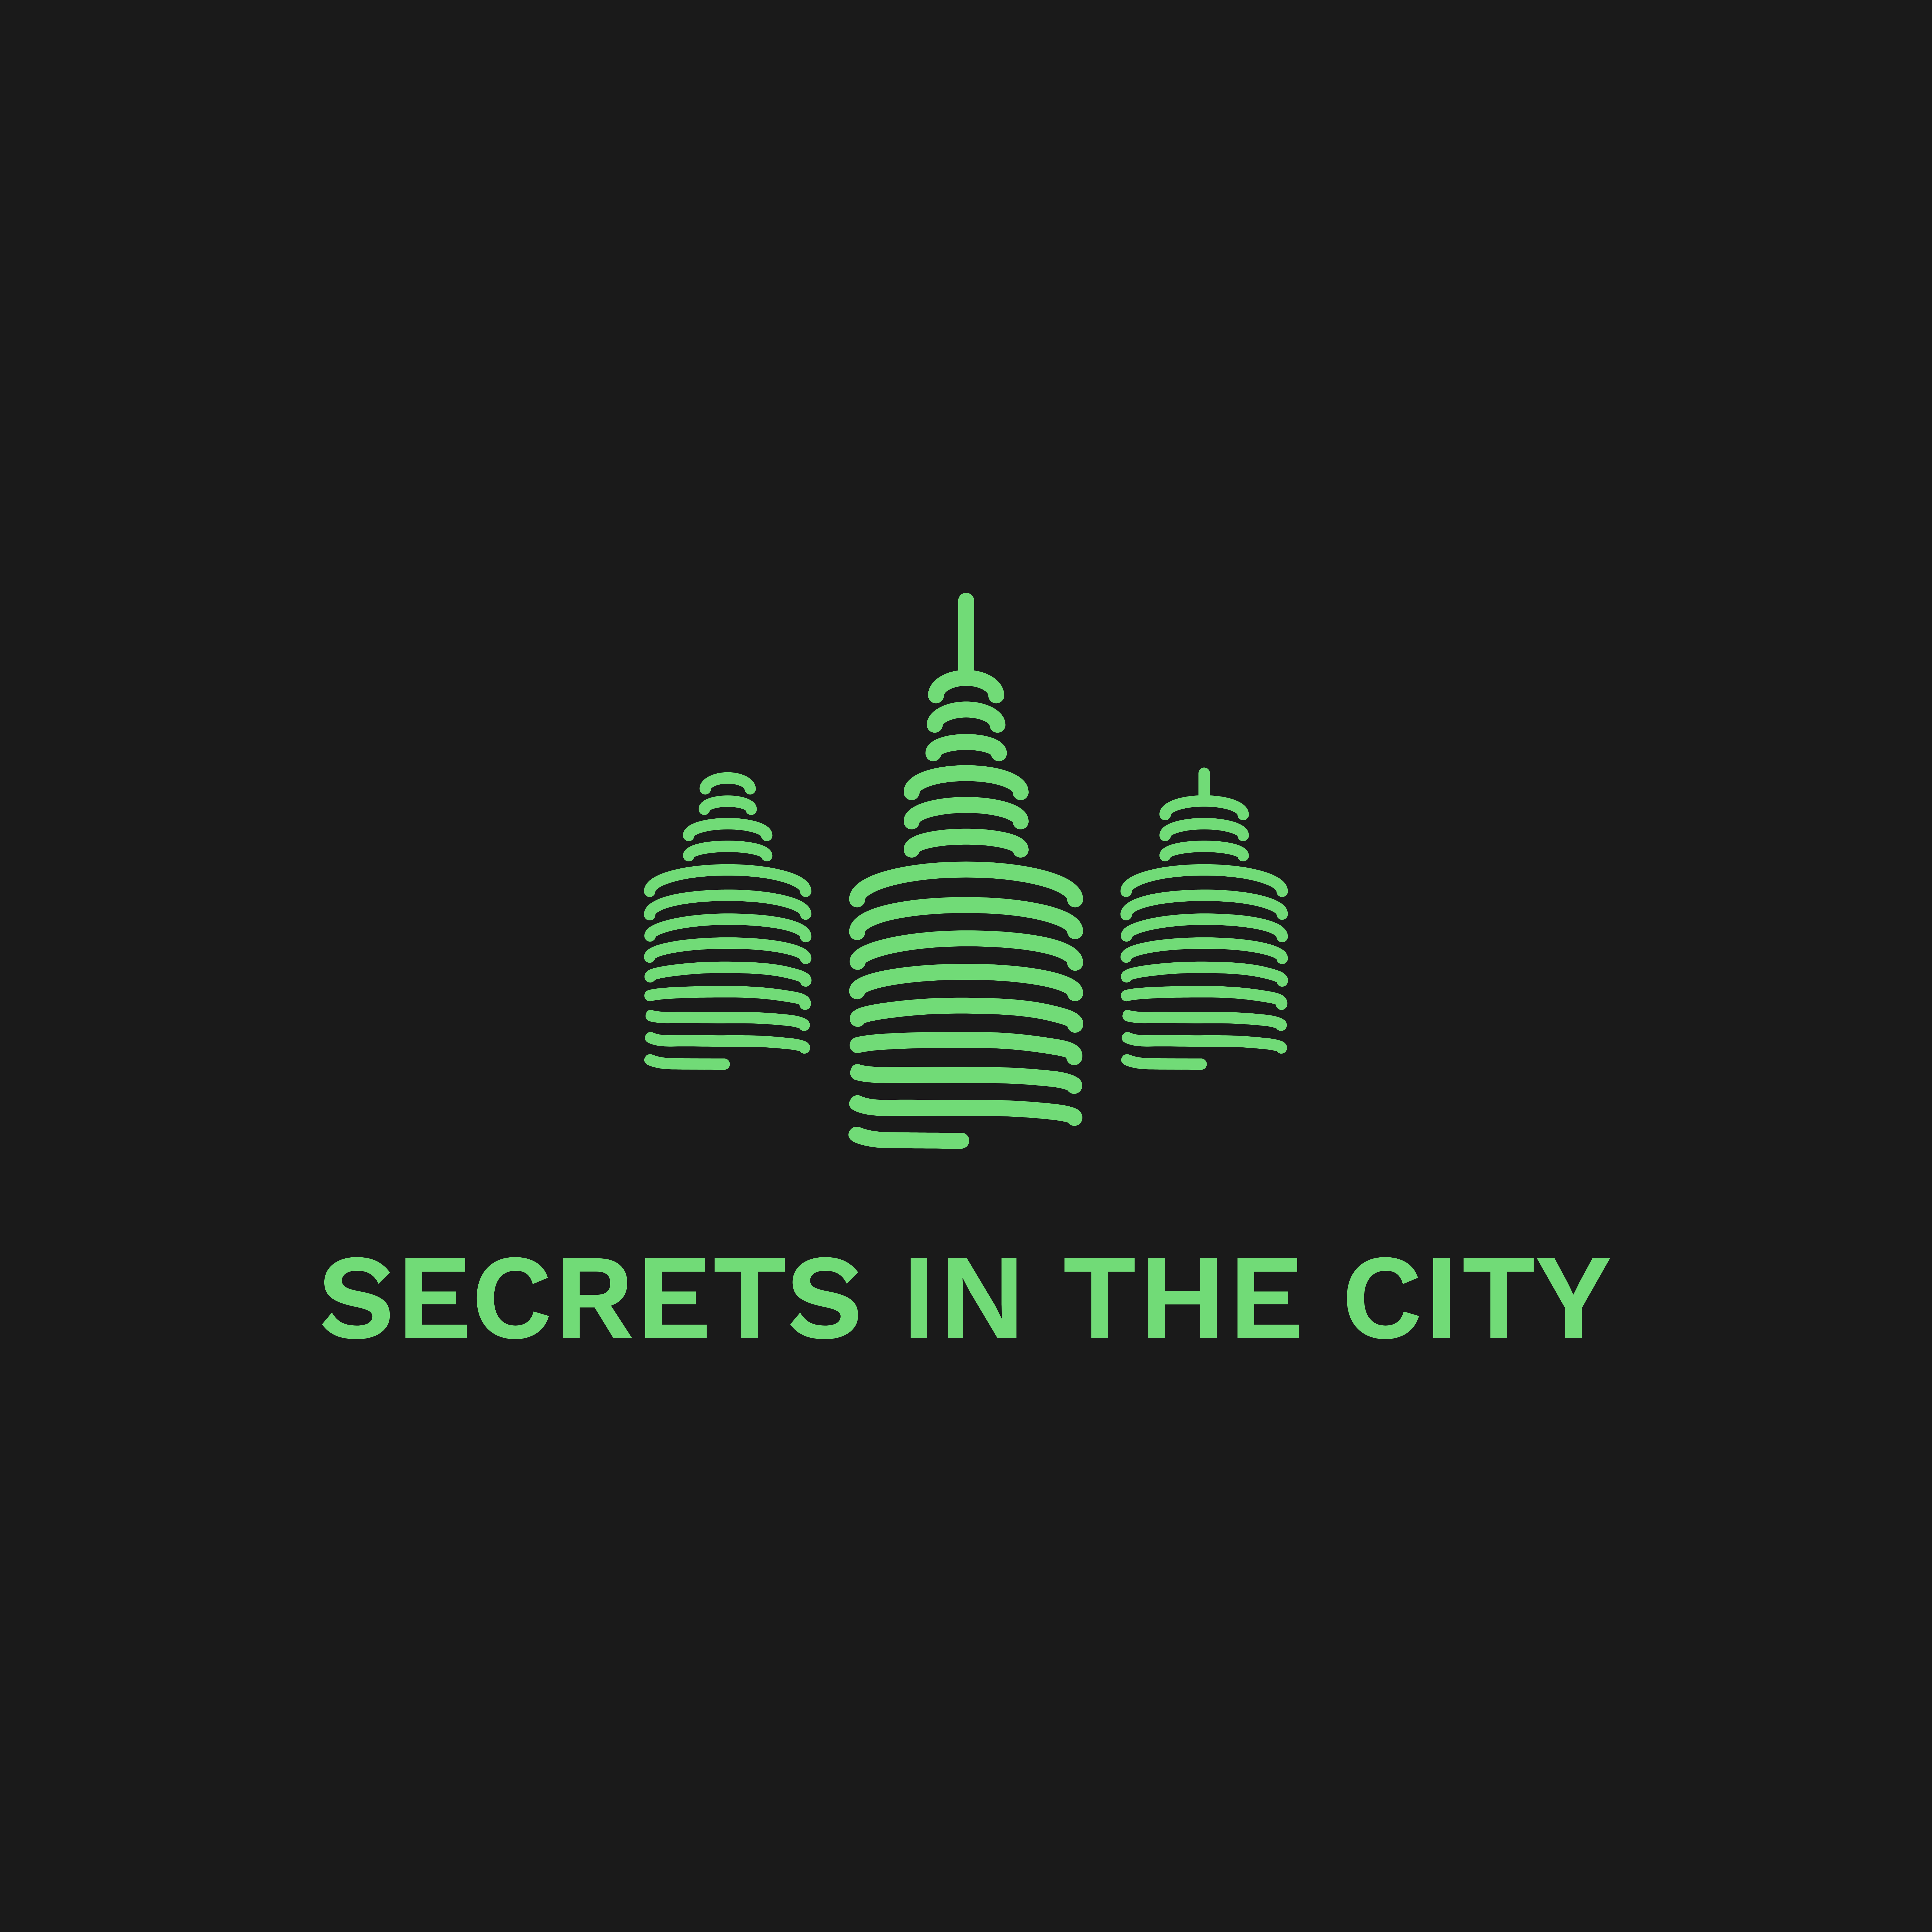 Secrets in the city (12+)